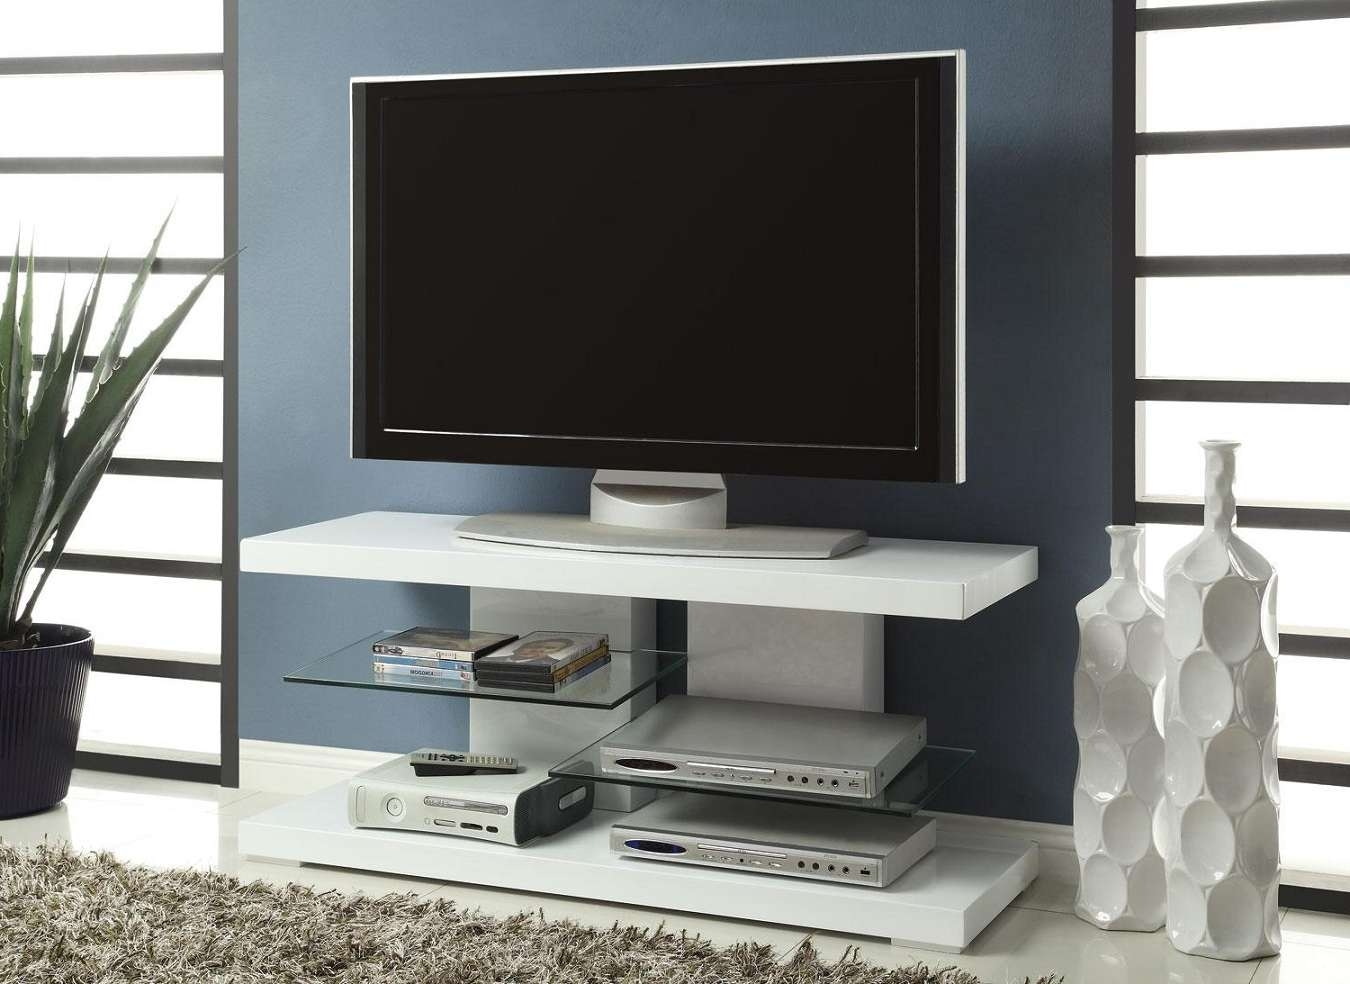 White Painted Plywood Flat Screen Tv Stand With Tempered Glass Throughout Contemporary Tv Stands For Flat Screens (View 8 of 15)